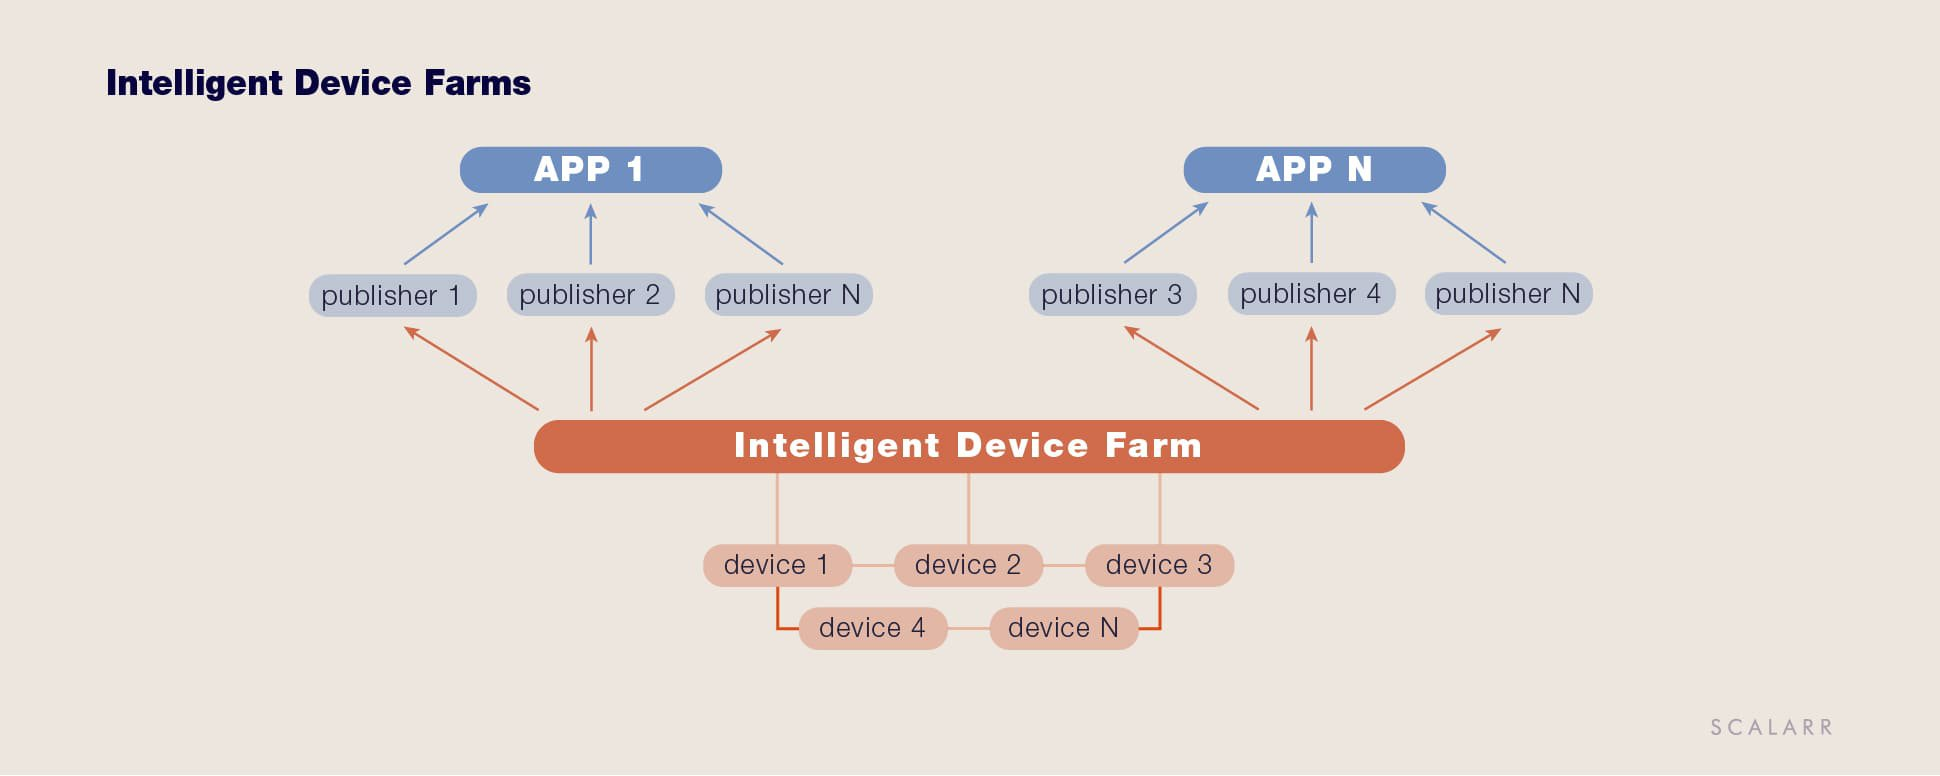 Intelligent Device Farms